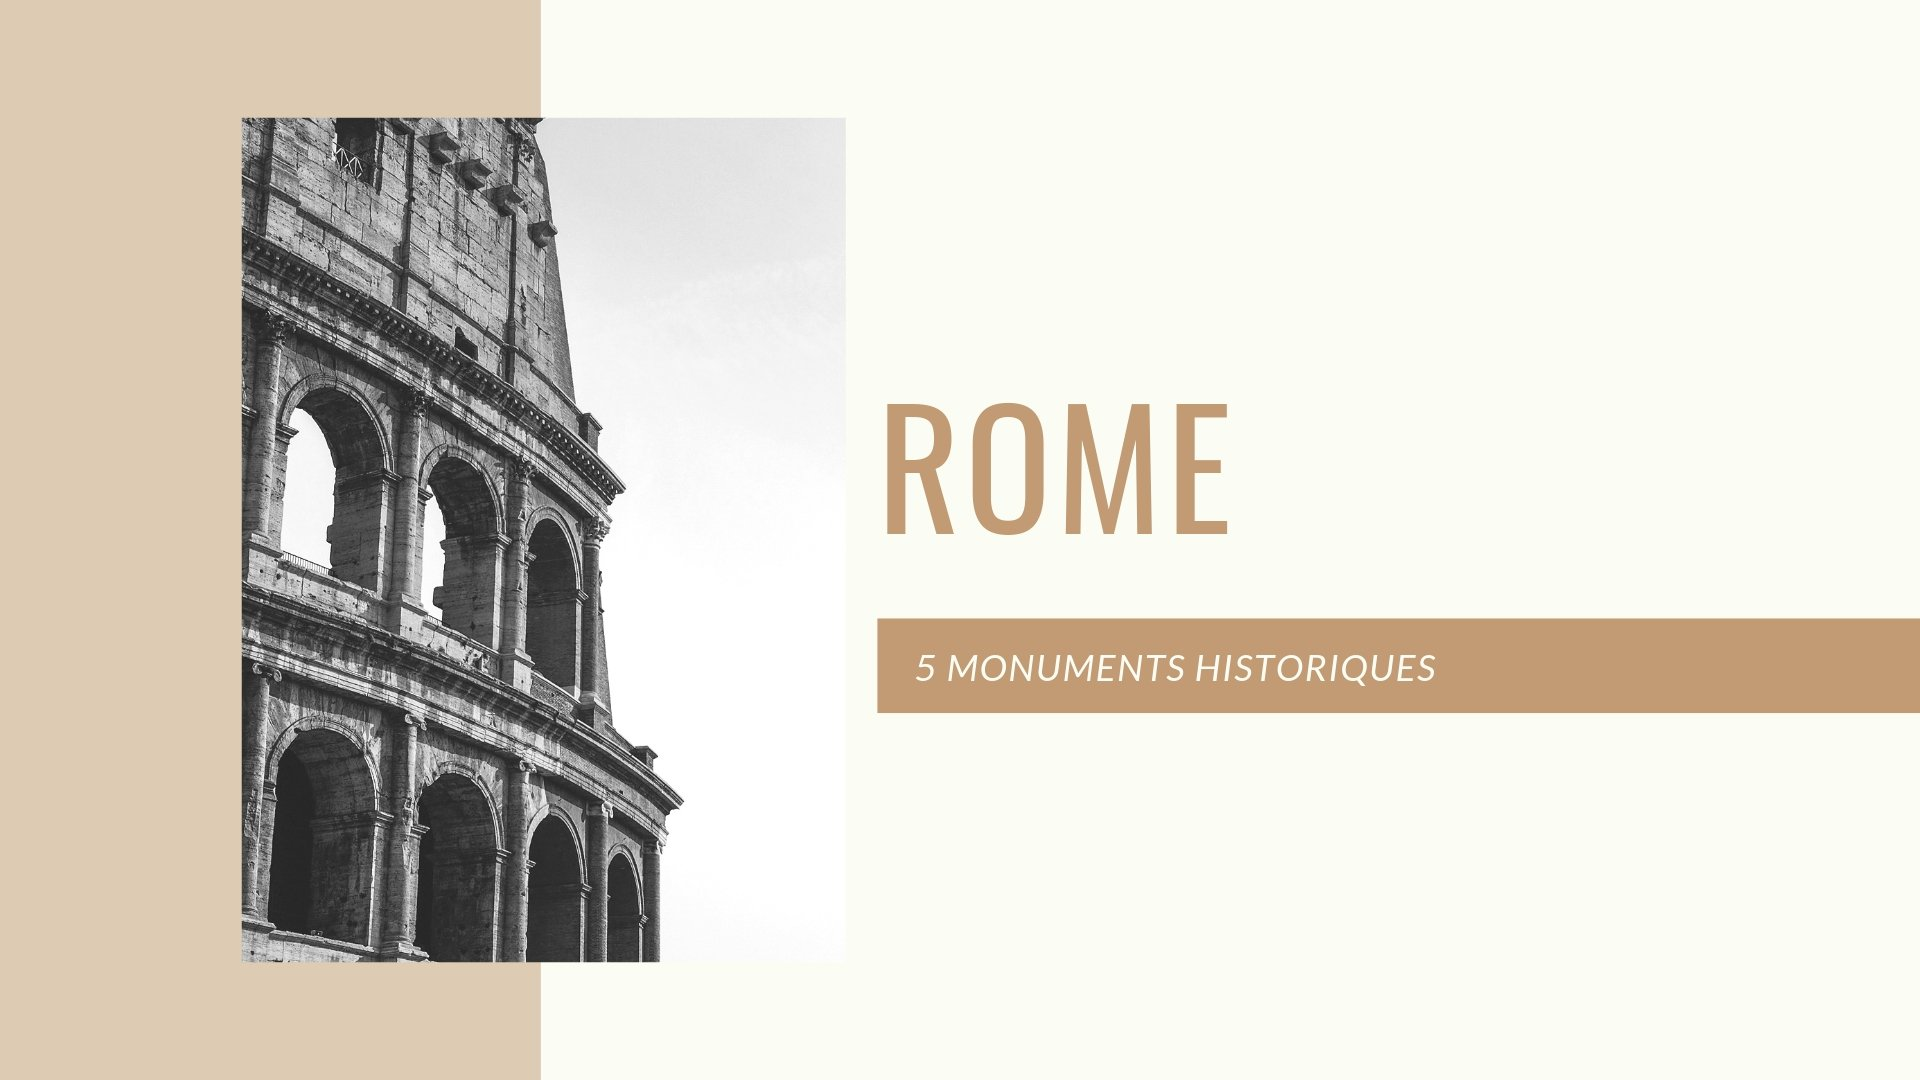 5 monuments marquants